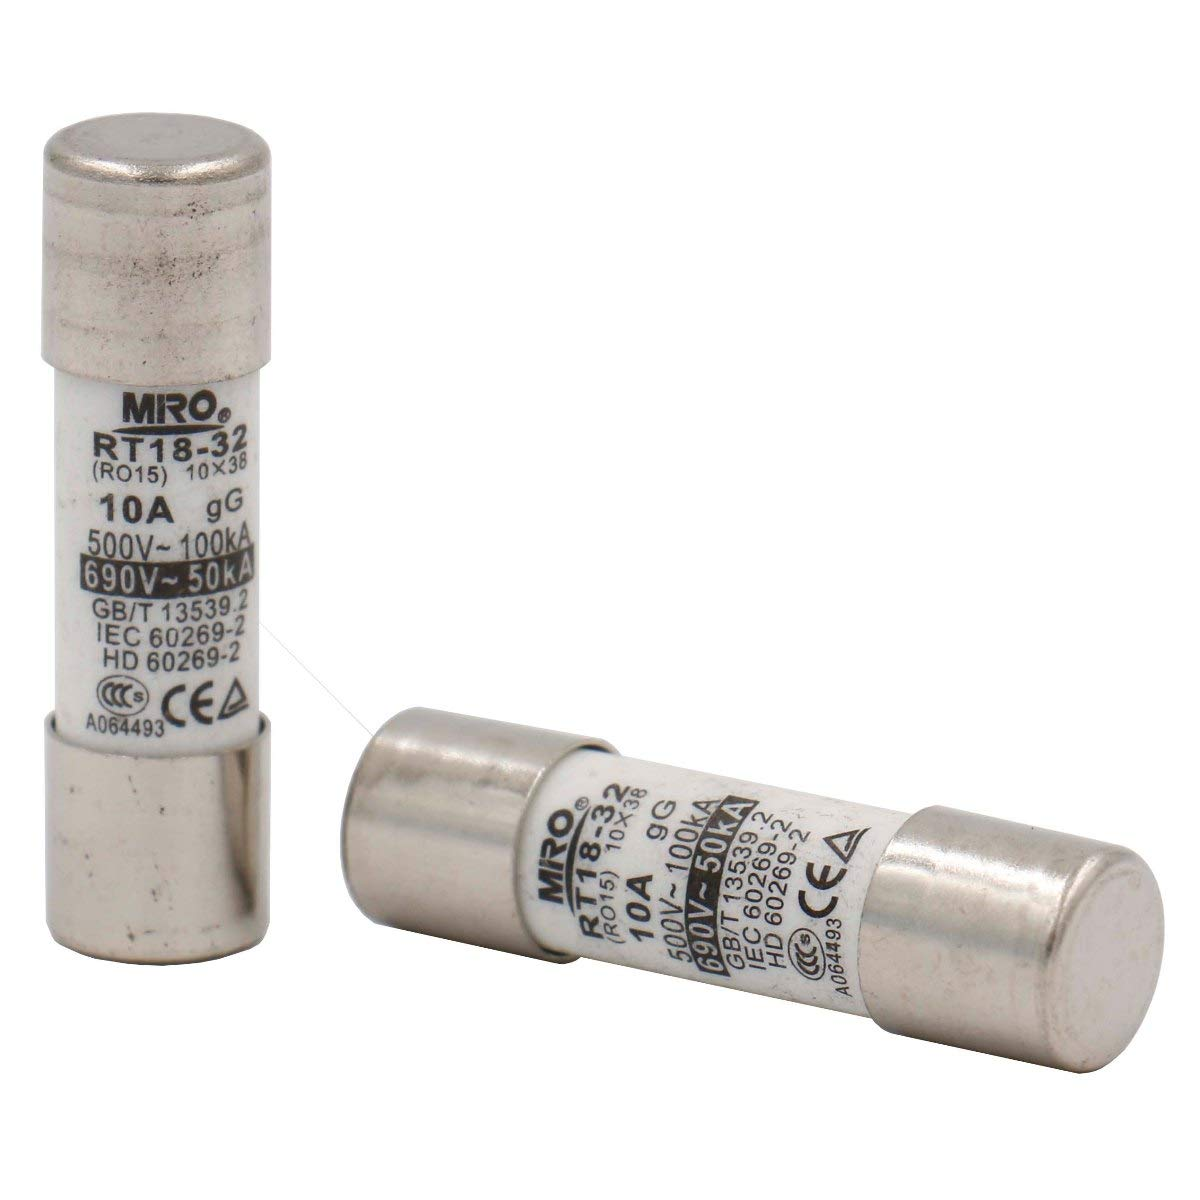 RO15 10 38 mm 10A 500V CE T/üV Pack of 20 Heschen Cylindrical Ceramic Tube Fuse Link RT18-32